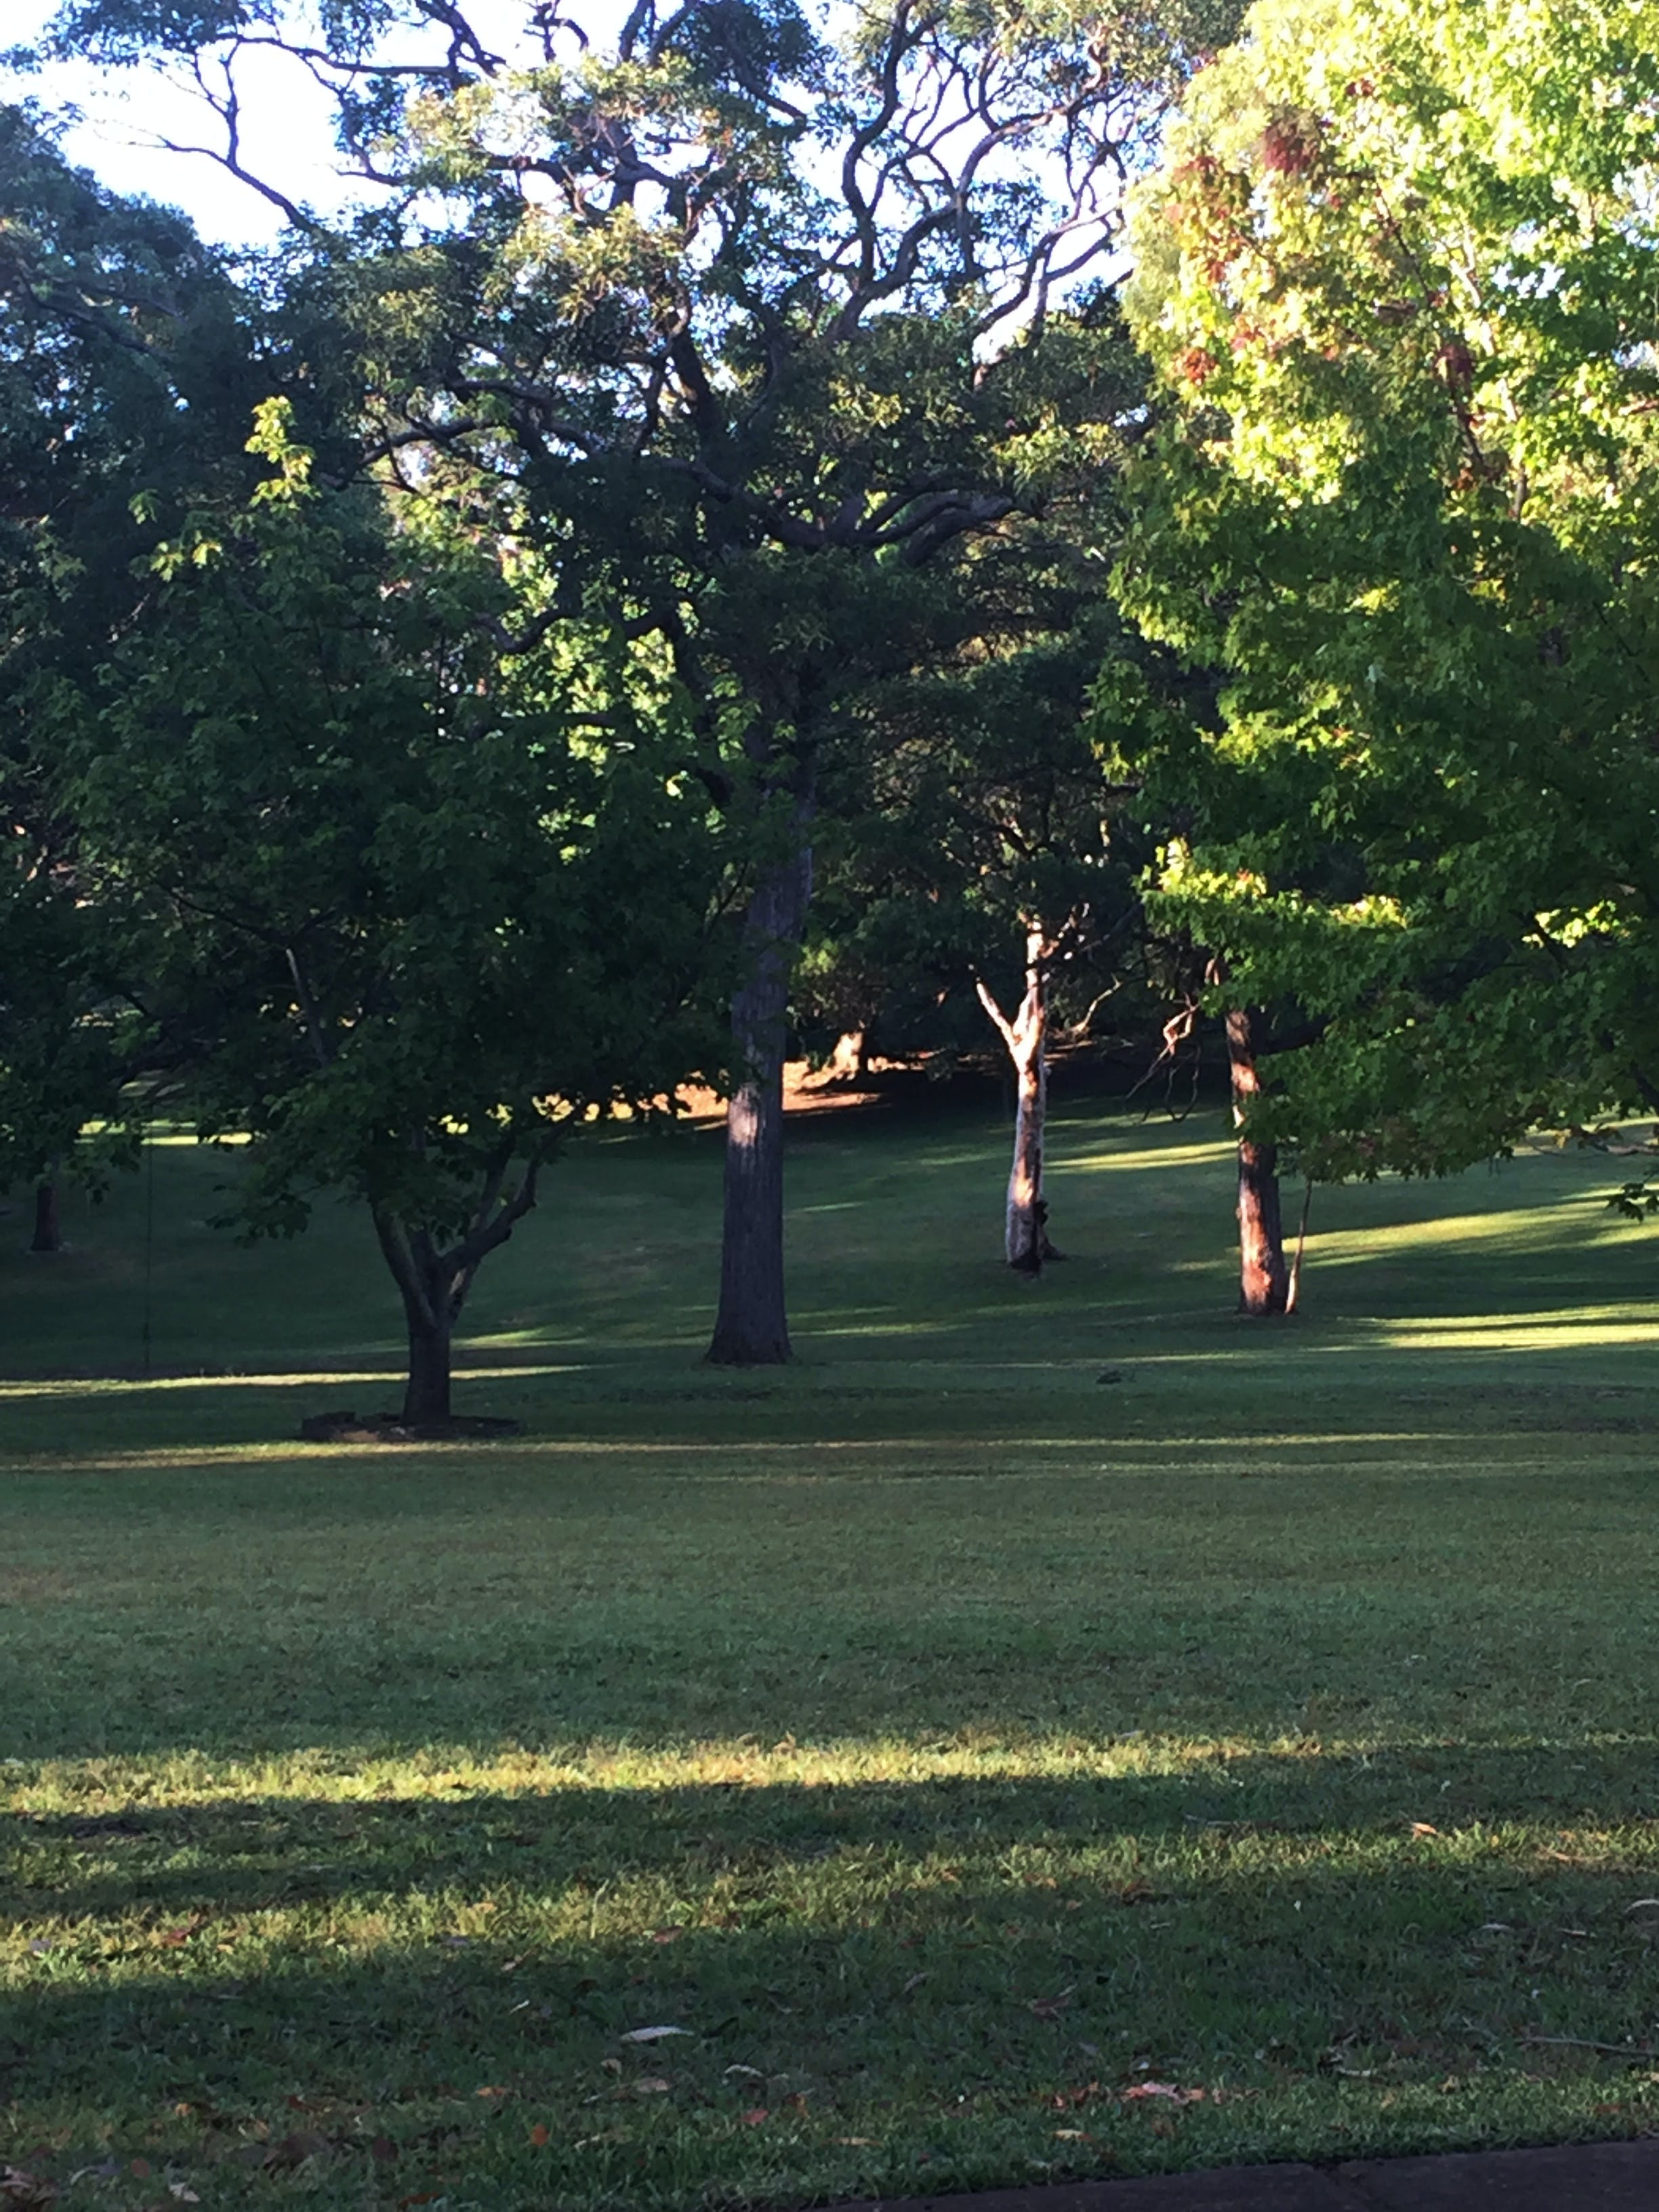 Early morning at Buttenshaw Park, Springwood, March 2016